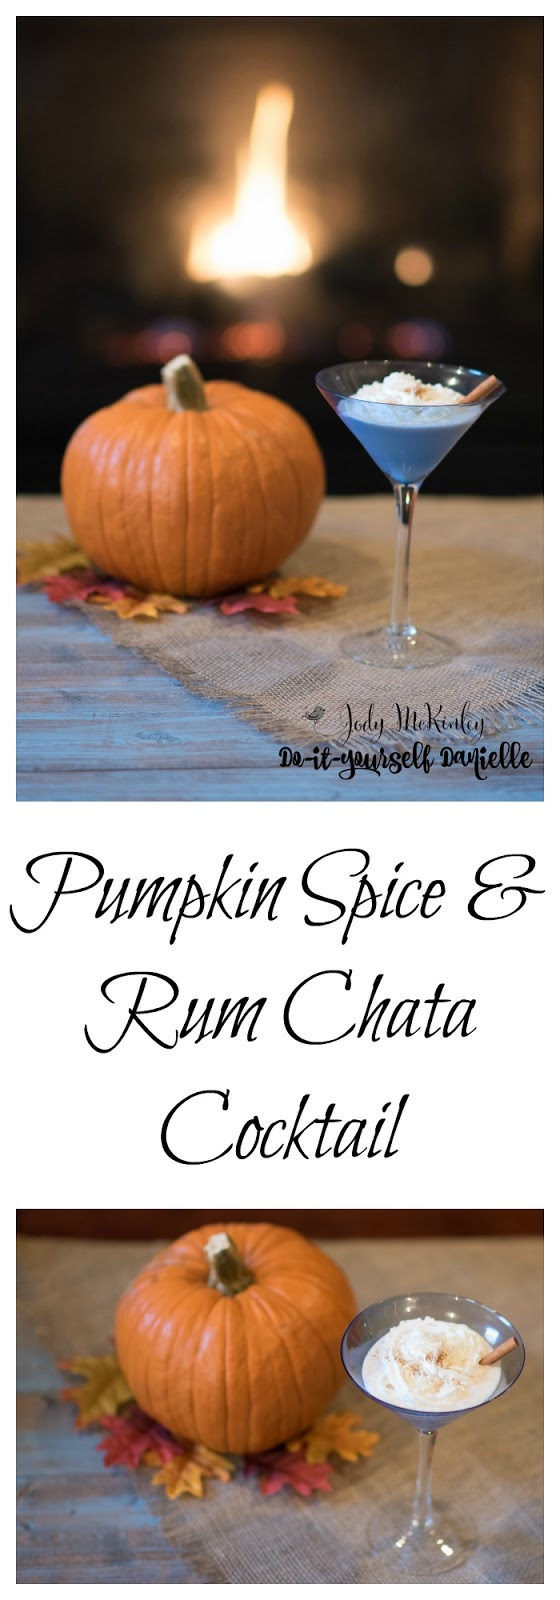 How to make a pumpkin spice chata cocktail.